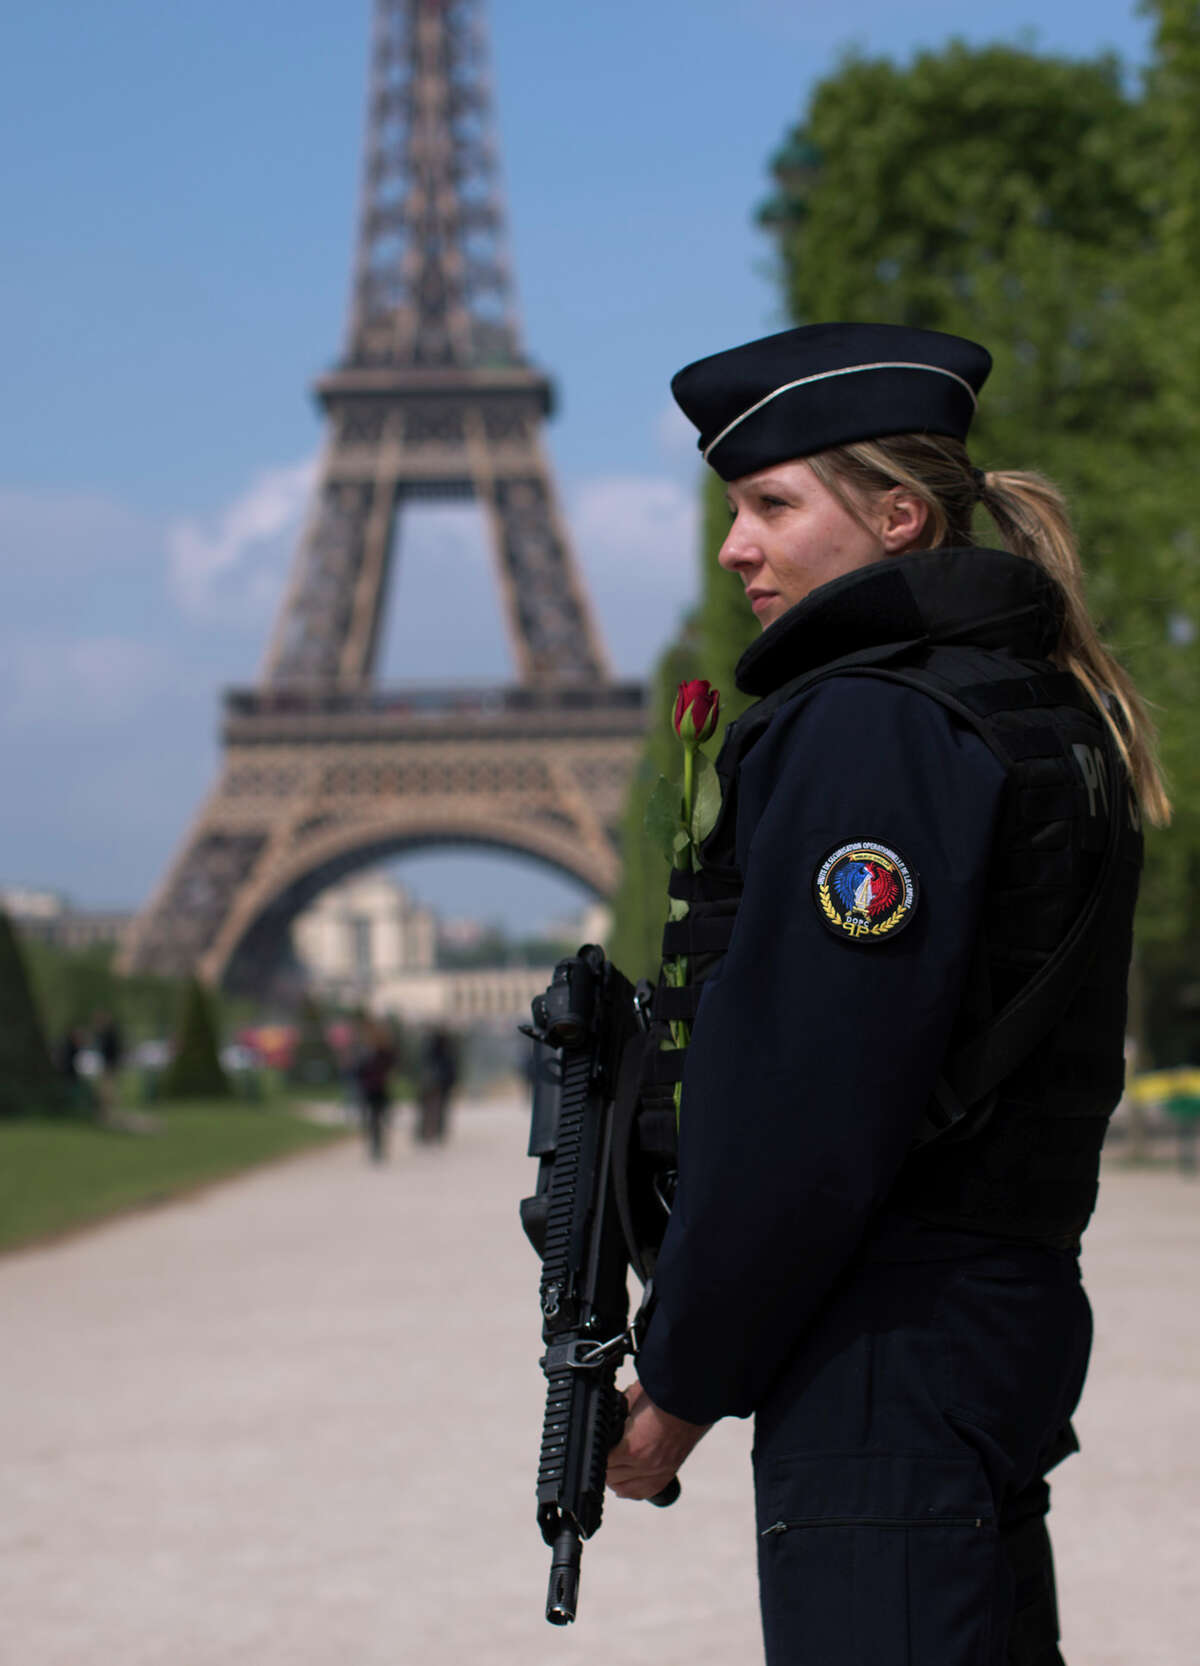 A French police officer patrols with the Eiffel Tower in background, in Paris, Saturday, April 22, 2017. The outcome of France's presidential election is being closely watched for signs that Europe is moving toward nationalist candidates who advocate the European Union's dissolution. The top two candidates from Sunday's vote in Paris will progress to a winner-takes-all May 7 runoff. (AP Photo/Emilio Morenatti)